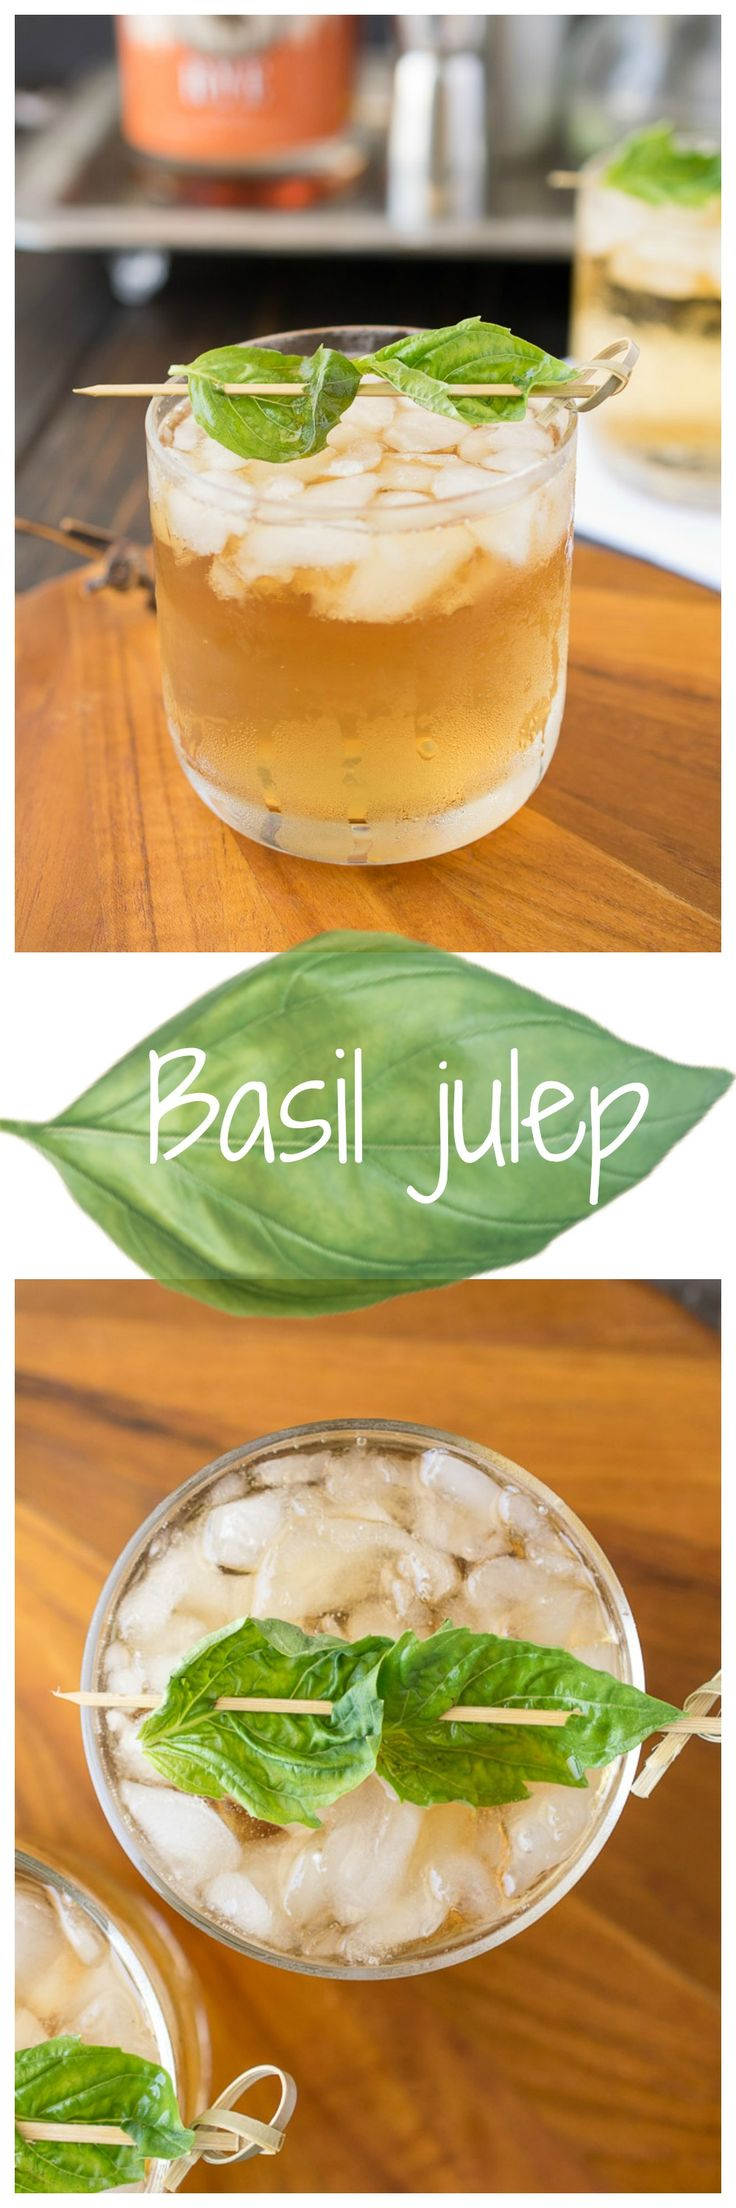 Basil julep - Based on a classic mint julep, I bring you a basil julep made with rye whiskey and basil. A very refreshing and perfect for sipping as the sun goes down as the Spring weather warms up.